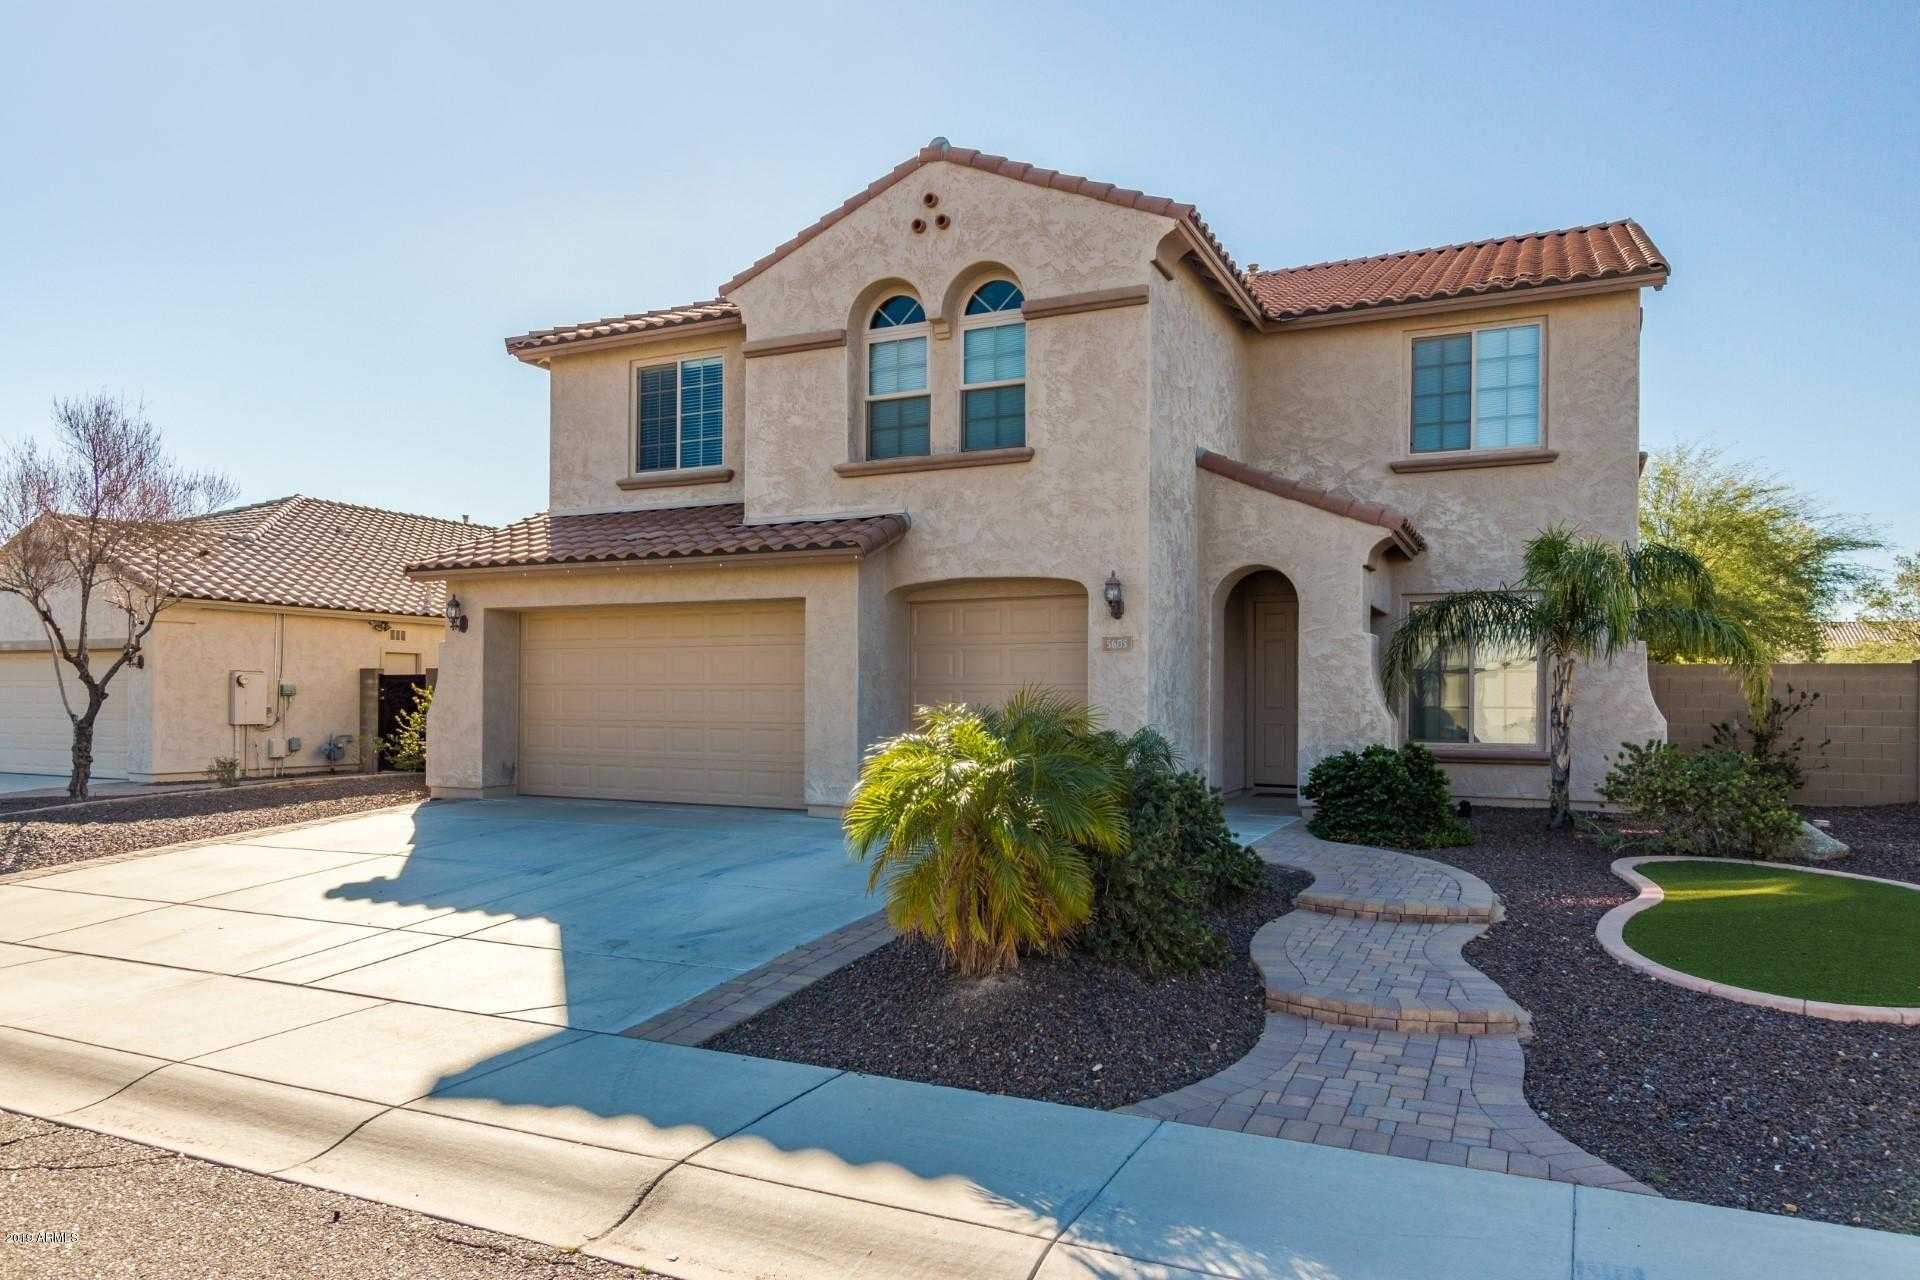 $469,900 - 4Br/4Ba - Home for Sale in Stetson Valley, Phoenix